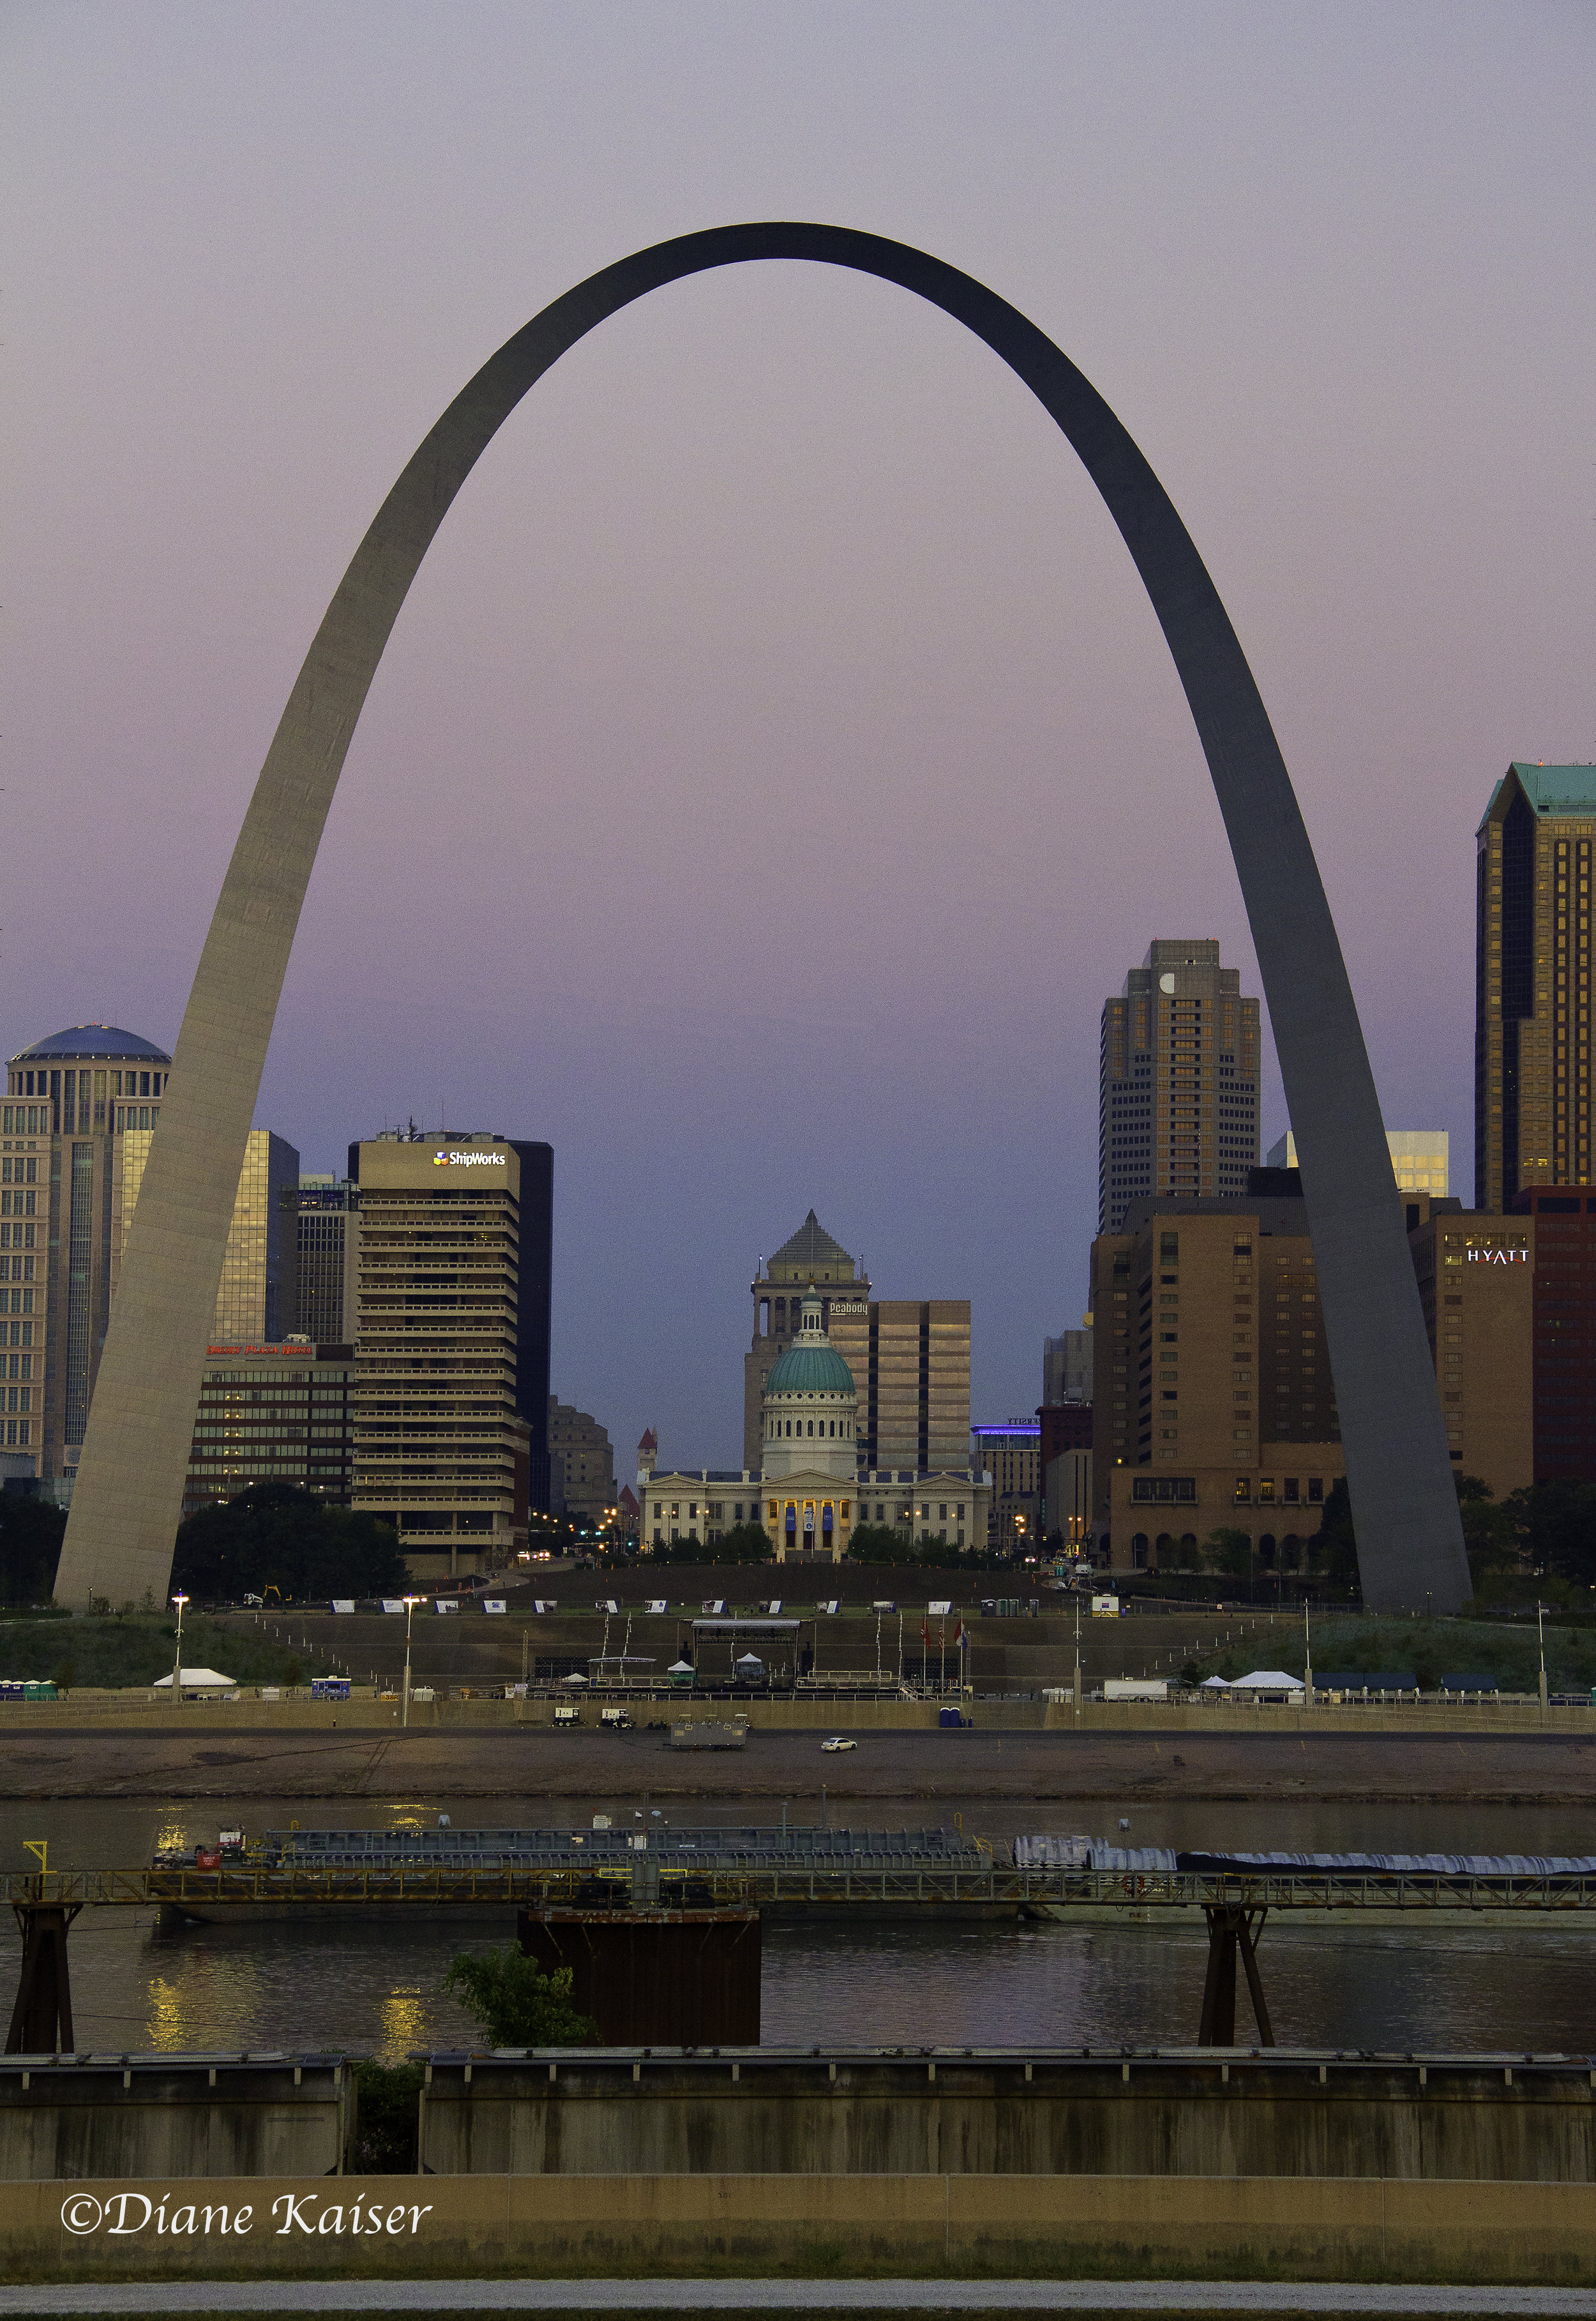 This is an important image to have in your 'bucket list' file. There is a lot of information about how the Old Courthouse would be used as the centerpiece in the arch's orientation. The arch frames that important city icon. You can also notice that barges are already moving down the river in the early morning hours.